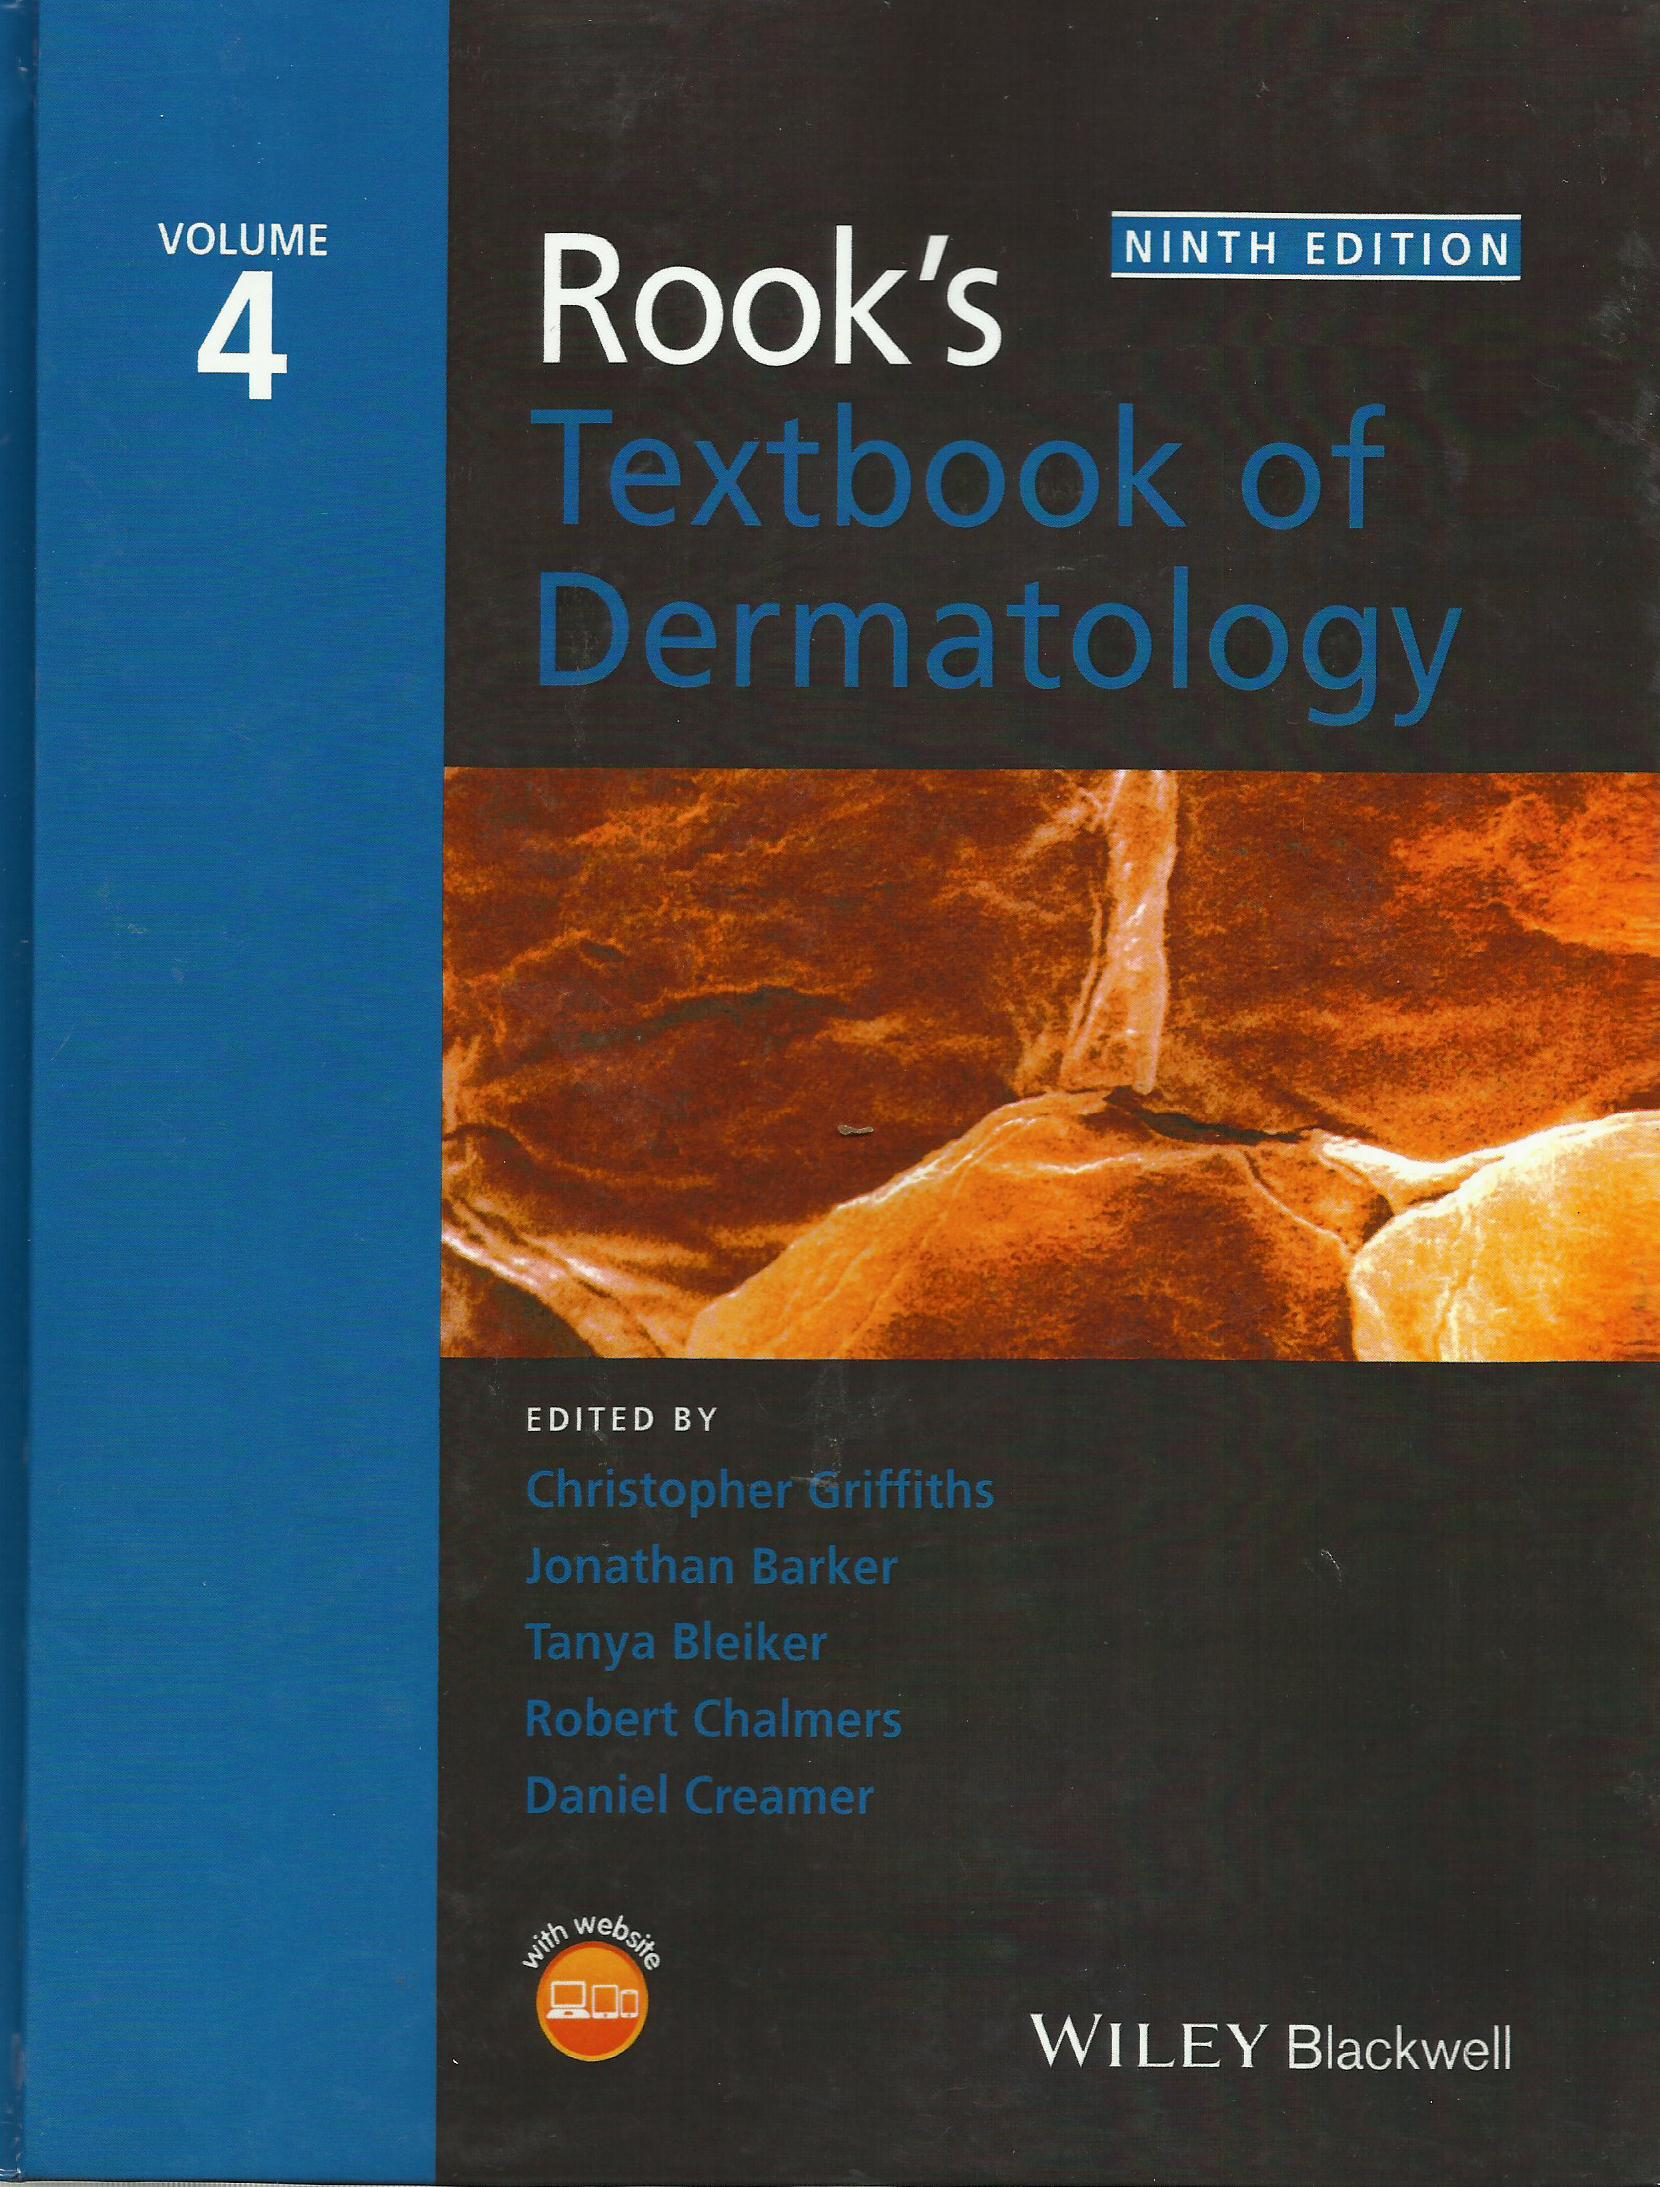 Rook's Textbook of Dermatology vol.4